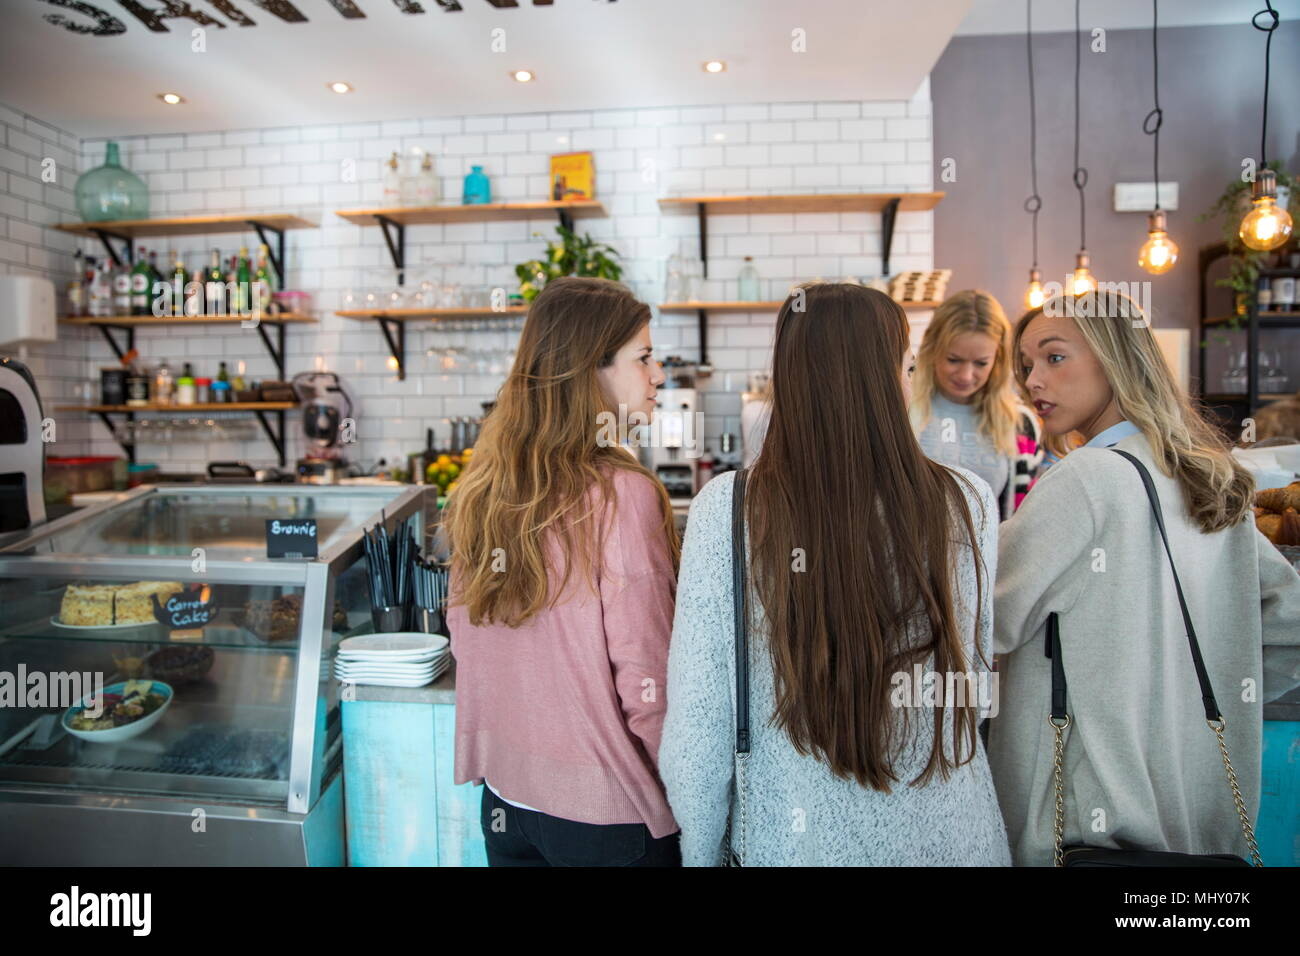 Three female friends, standing at counter in cafe, rear view - Stock Image